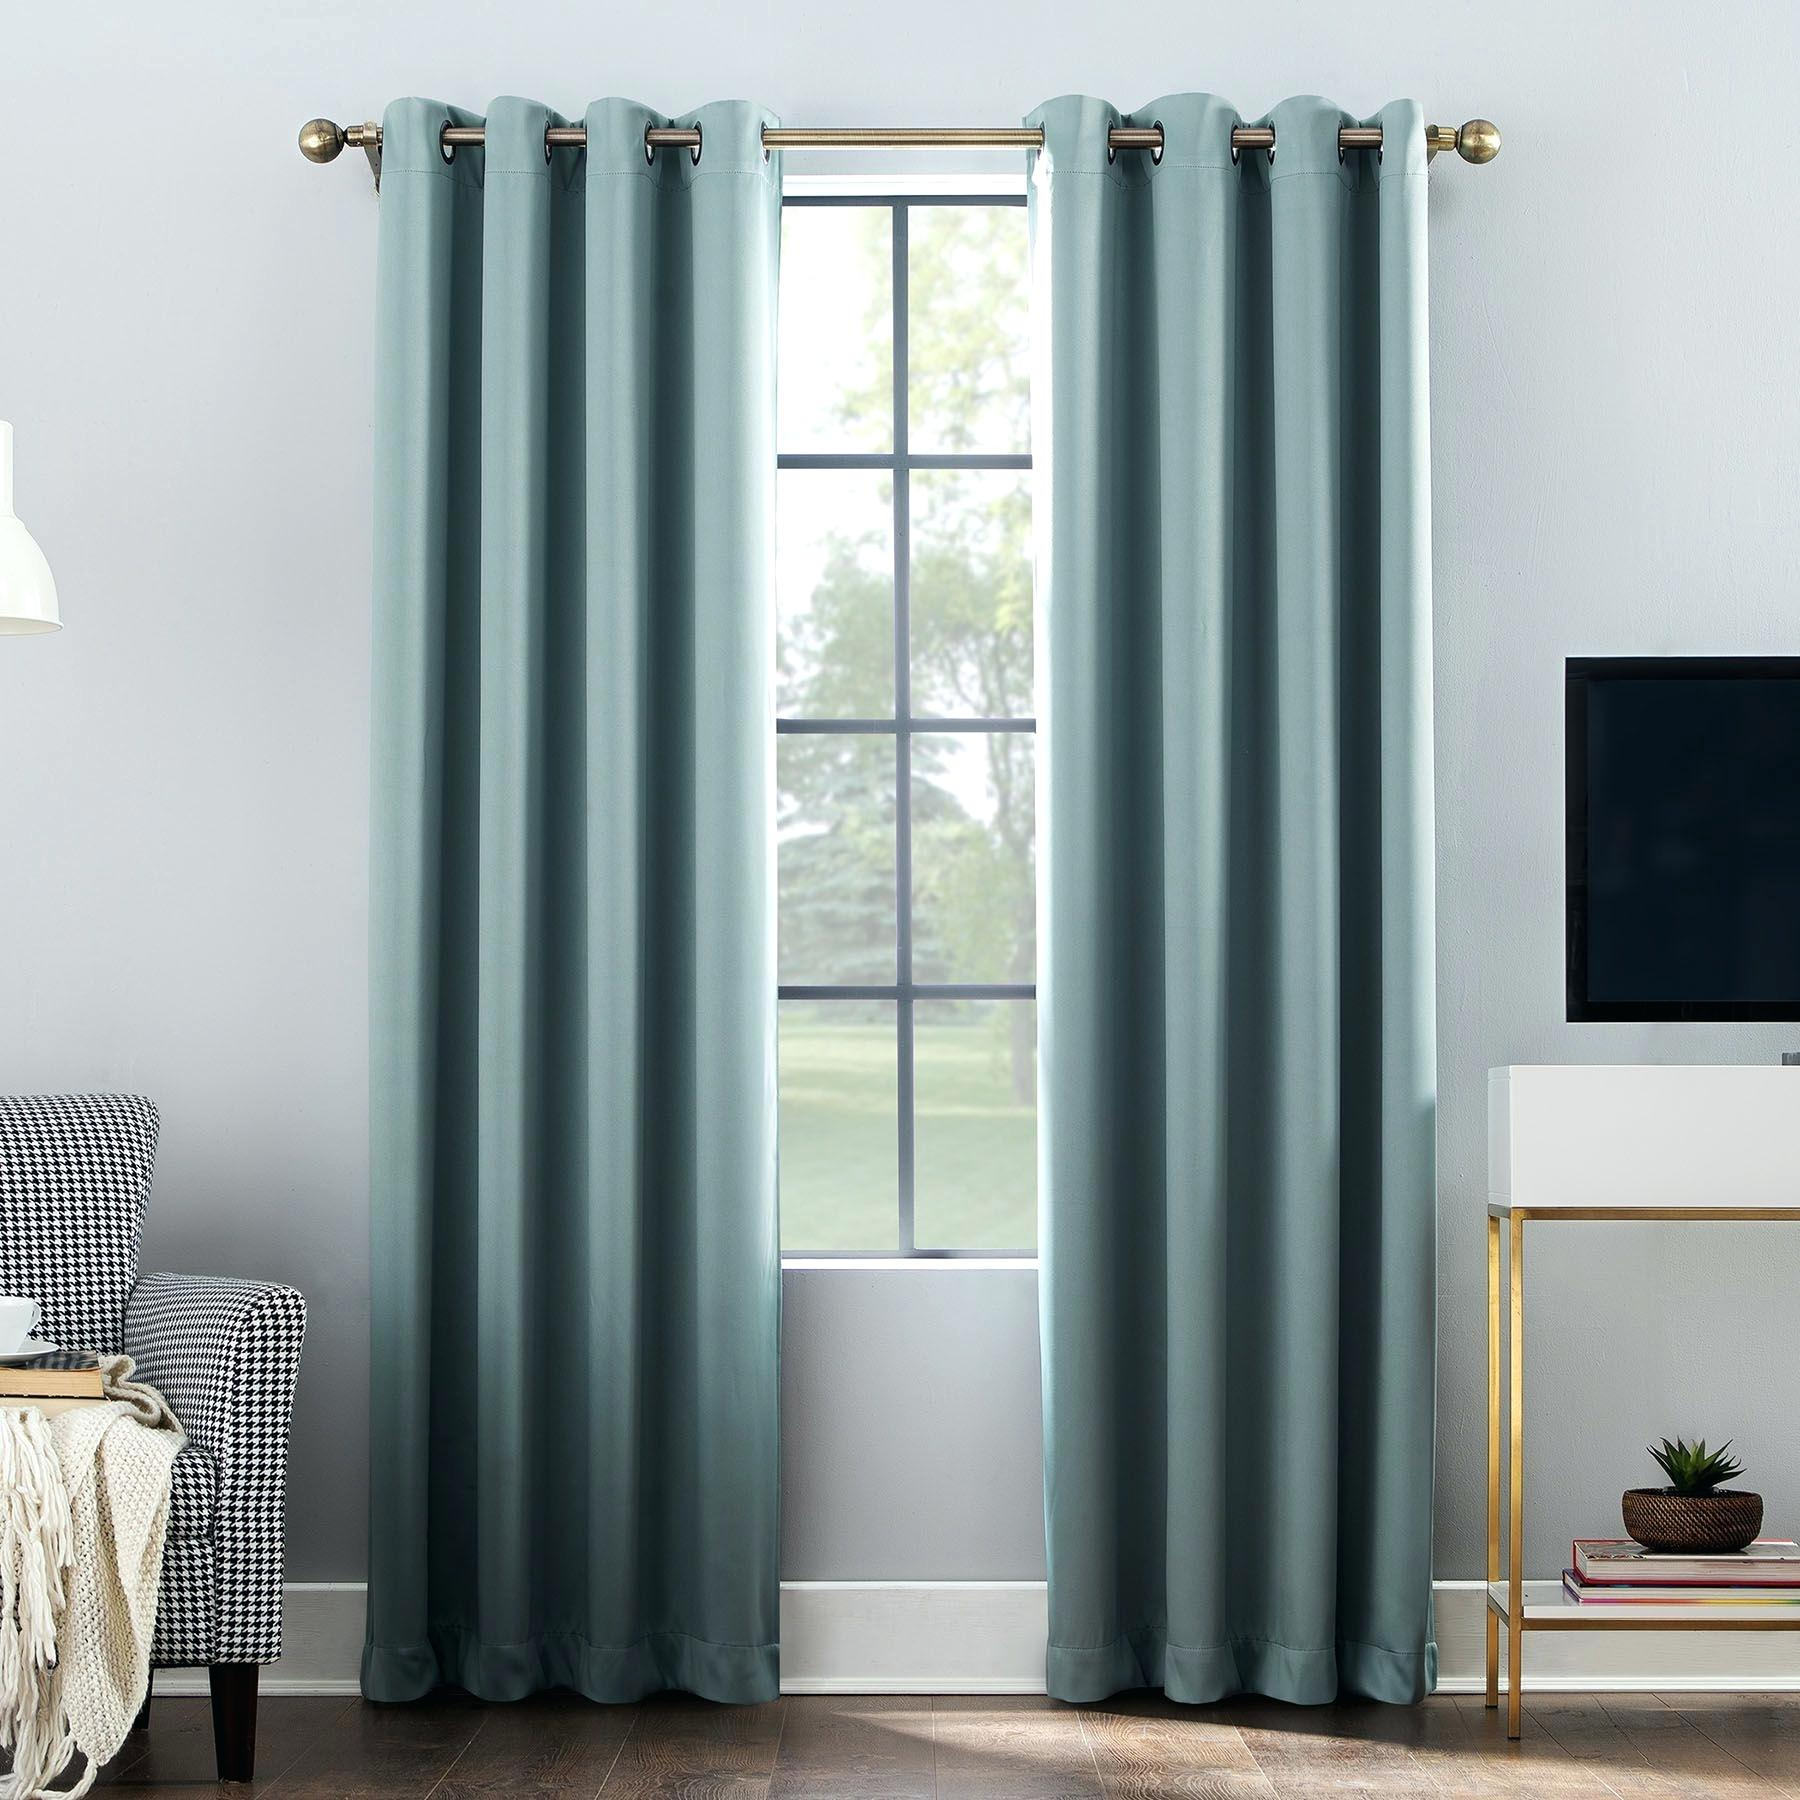 Aurora Home Thermal Insulated Blackout Grommet Top Curtain In Thermal Insulated Blackout Grommet Top Curtain Panel Pairs (View 19 of 30)